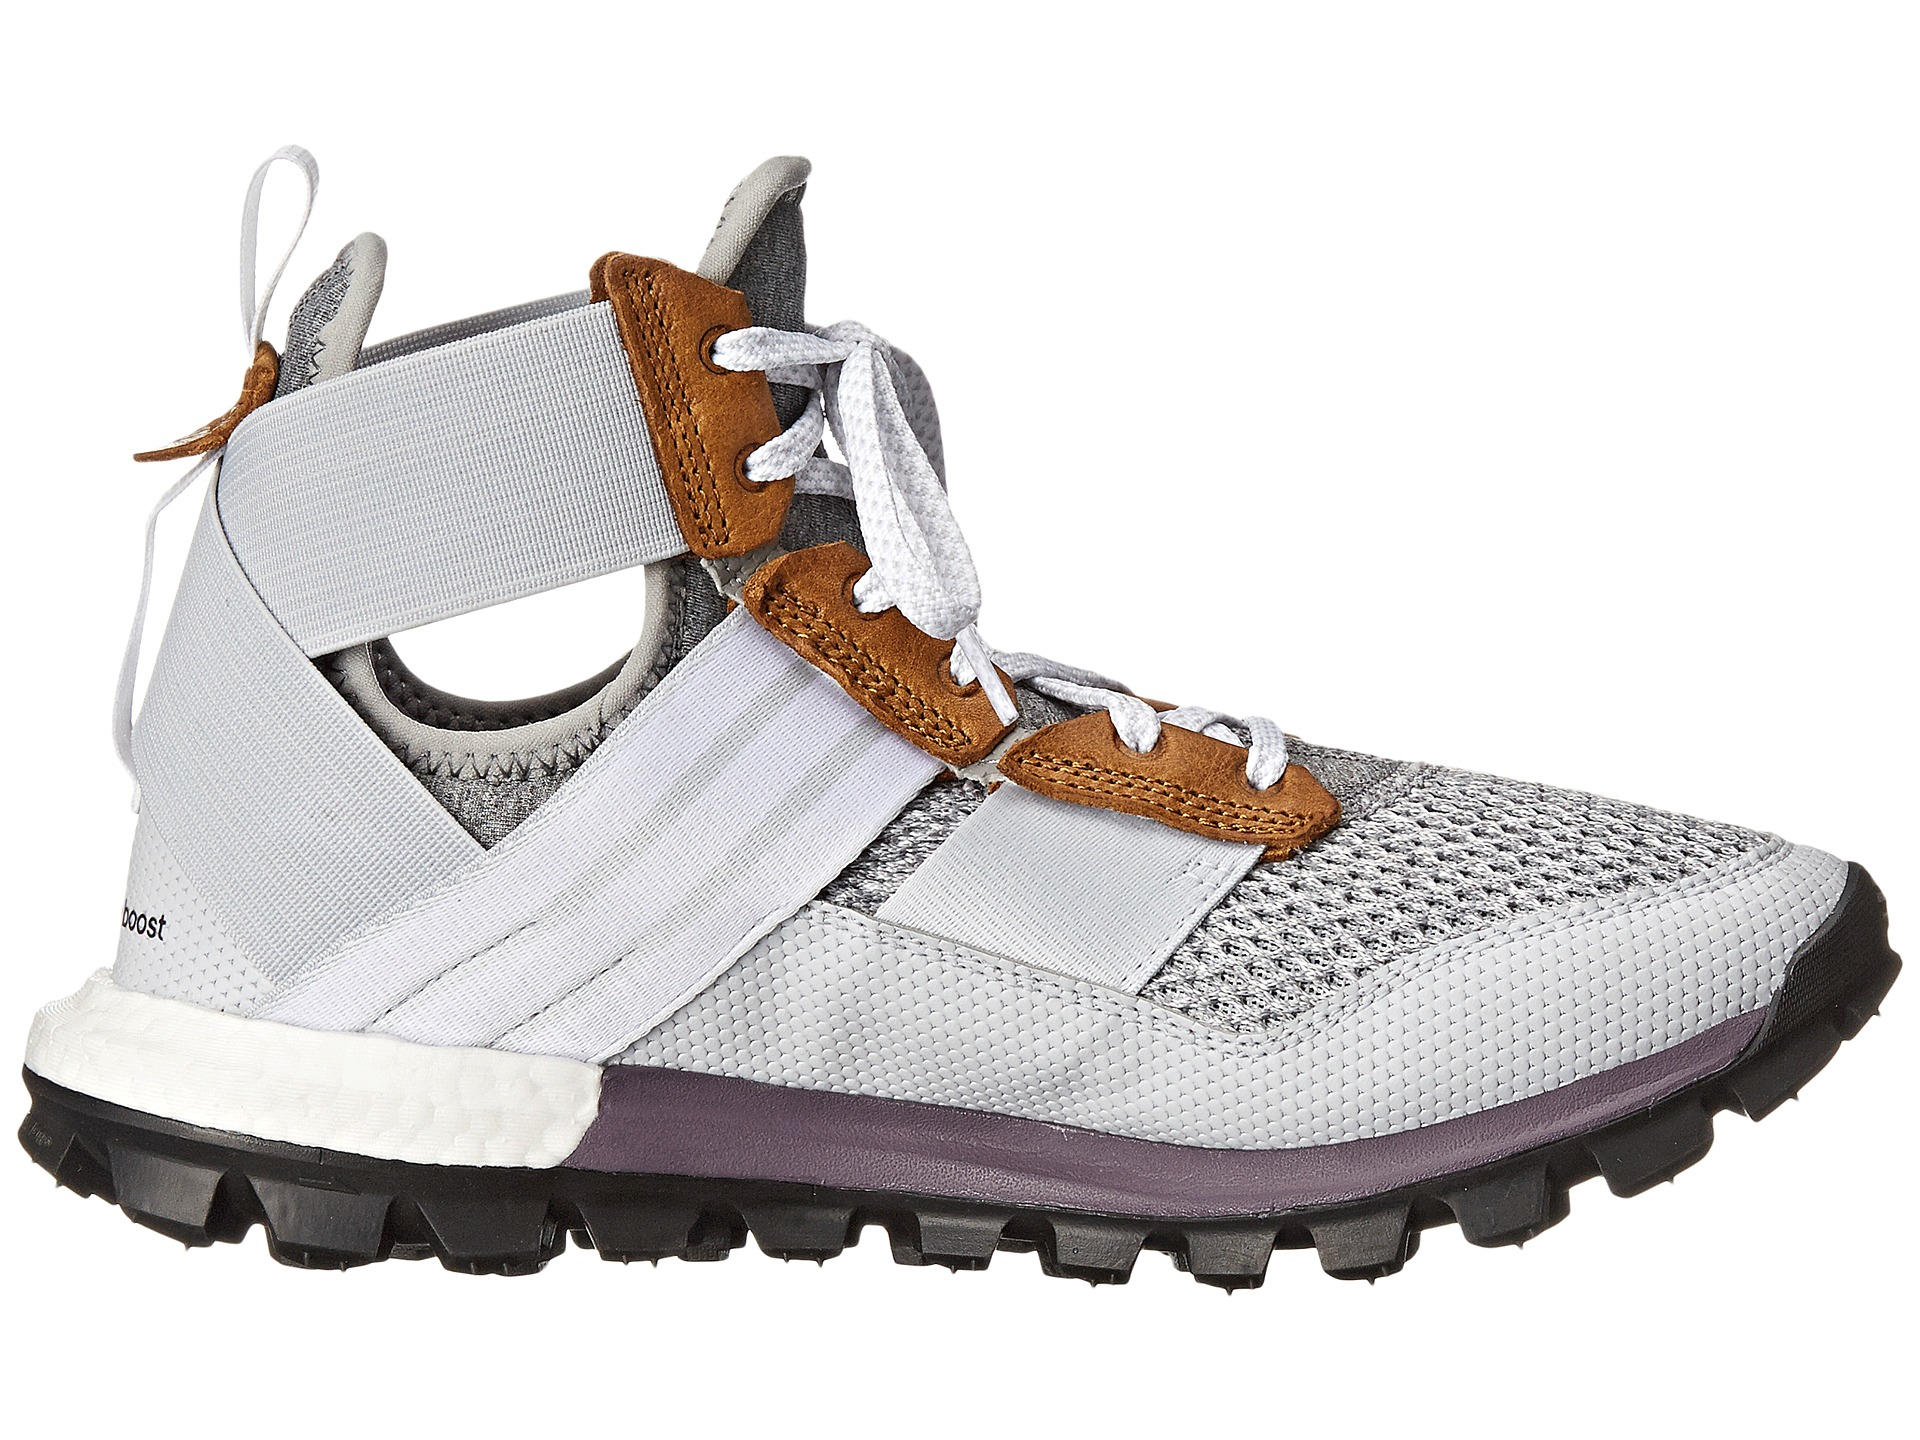 deaee0d0011c Lyst - adidas Response Trail Boost Boot in Gray